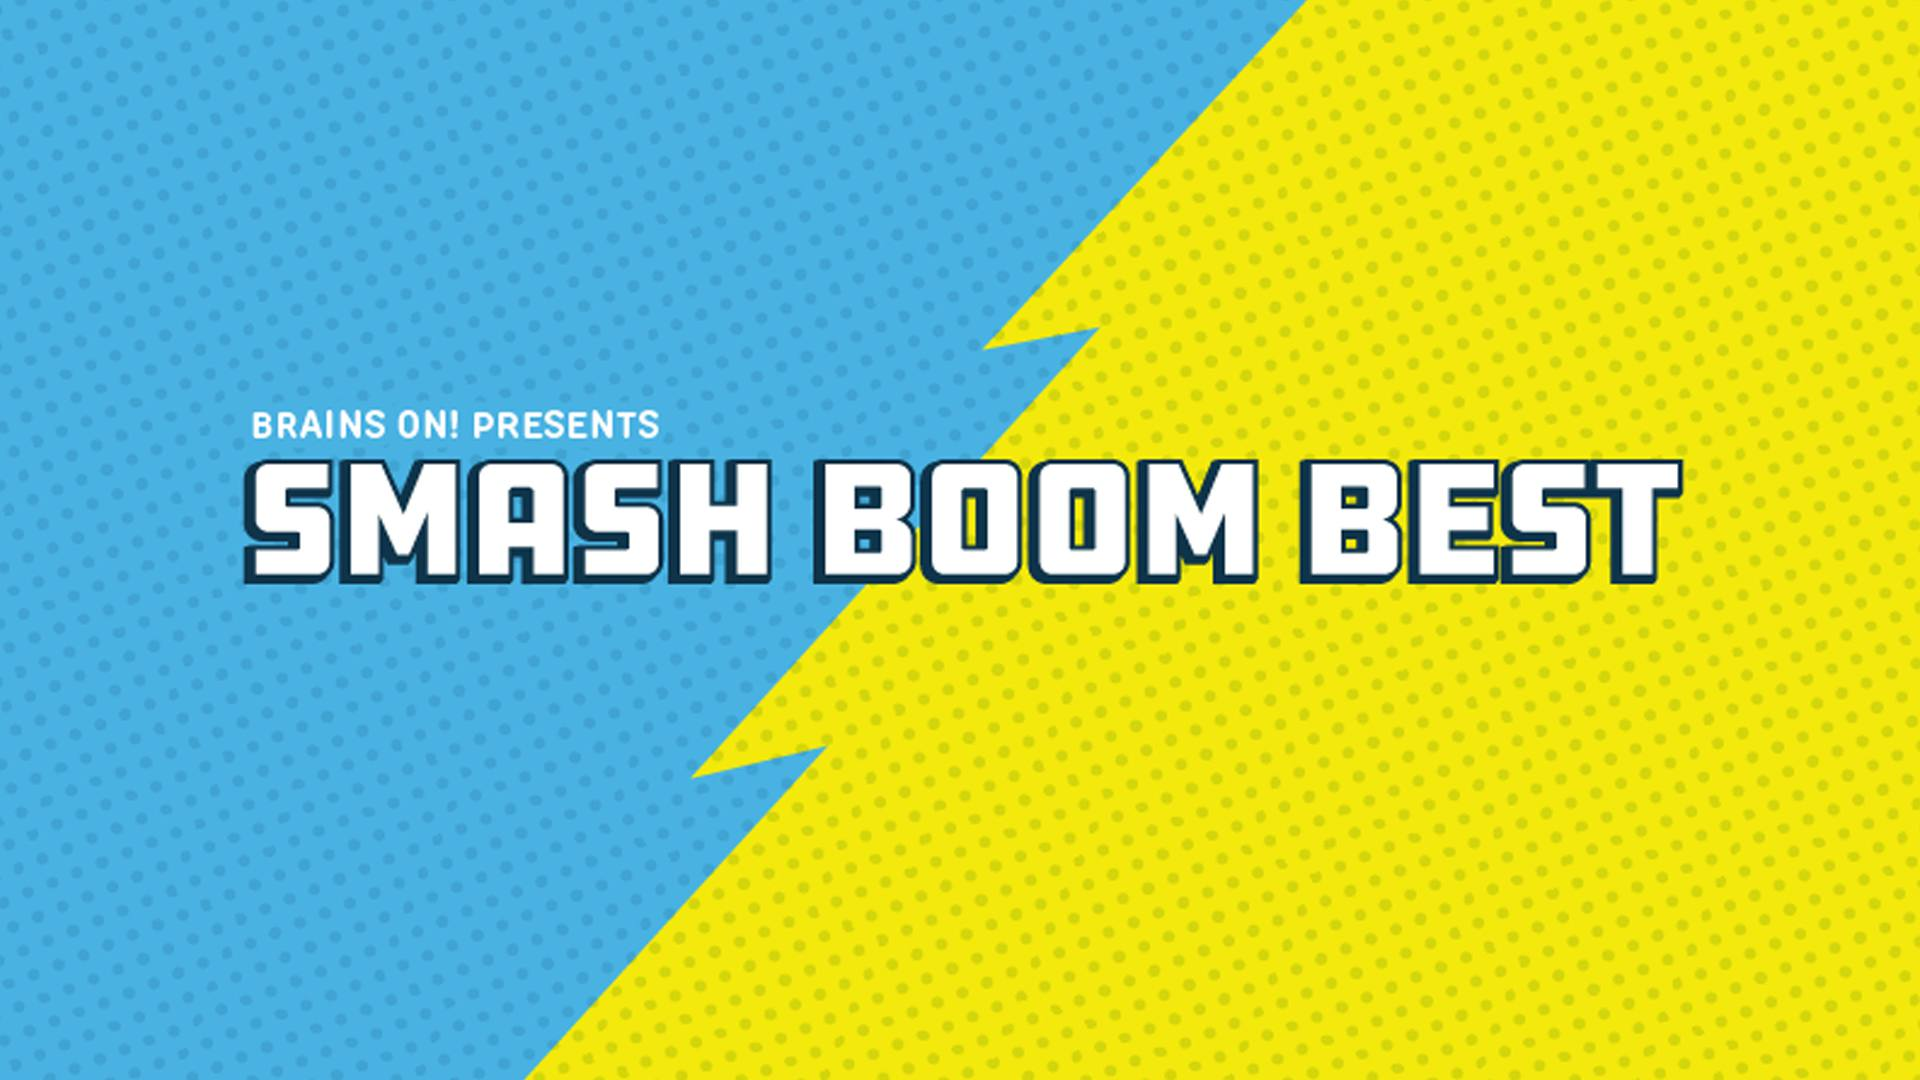 Smash Boom Best: A Safe Kids Podcast With a Gameshow Twist